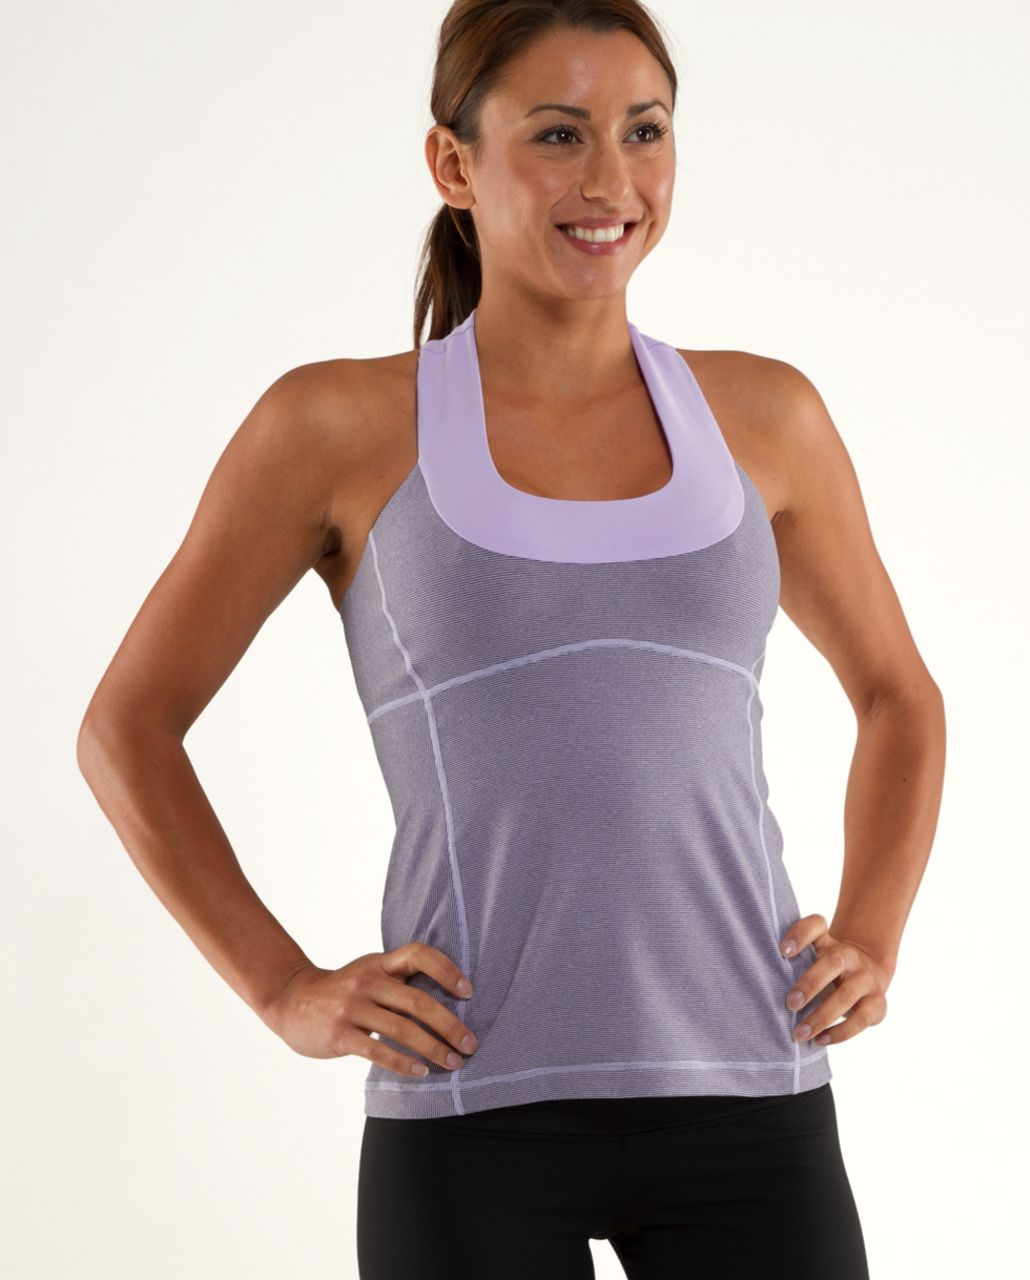 Lululemon Scoop Neck Tank - Lilac Heathered Coal Wee Stripe /  Lilac